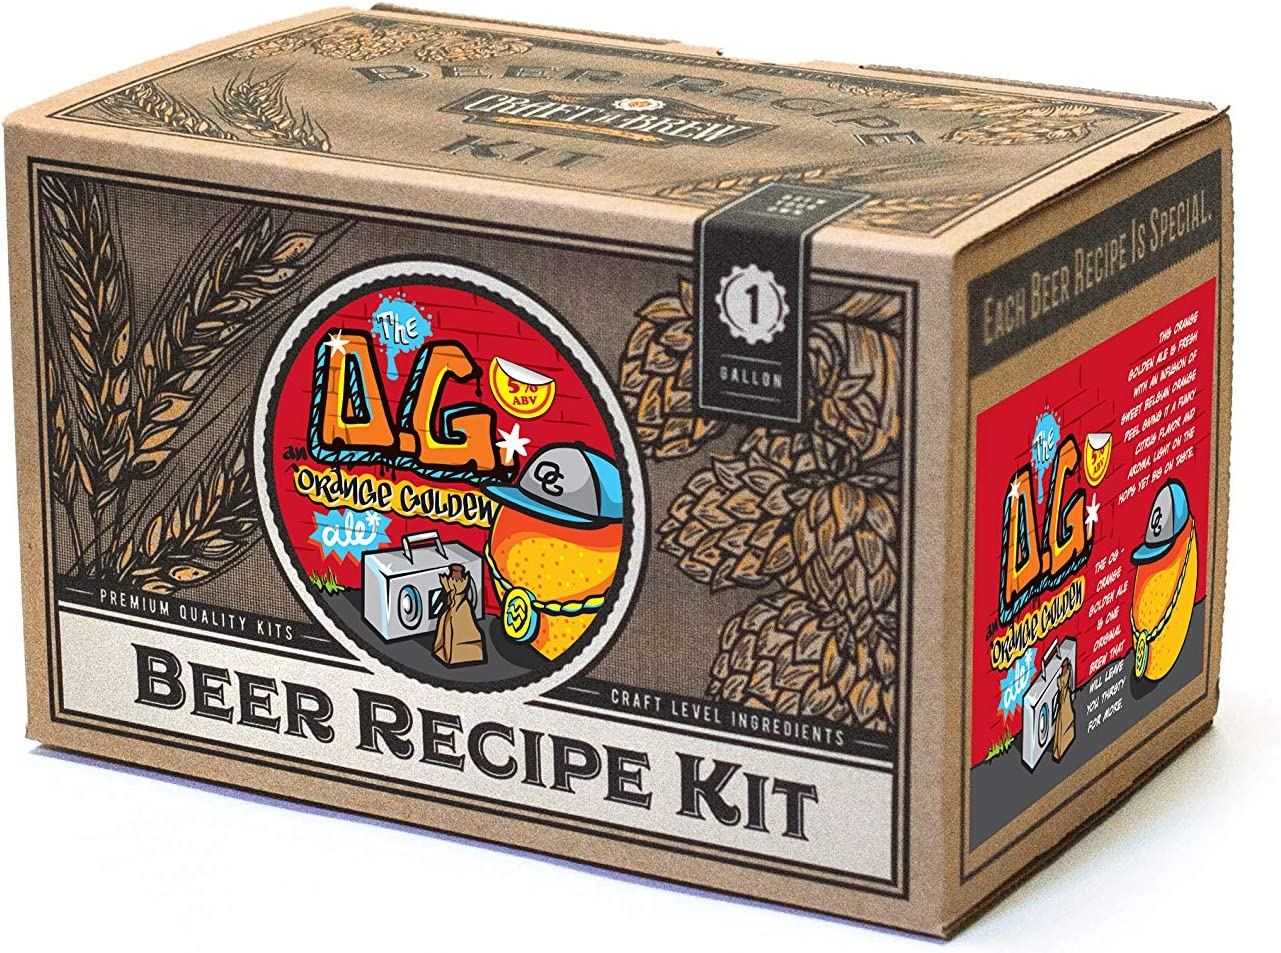 Craft a Brew Ingredient 1 Gallon O.G. Orange Golden Recipe Kit – Make Your Own Beer with Home Brewing